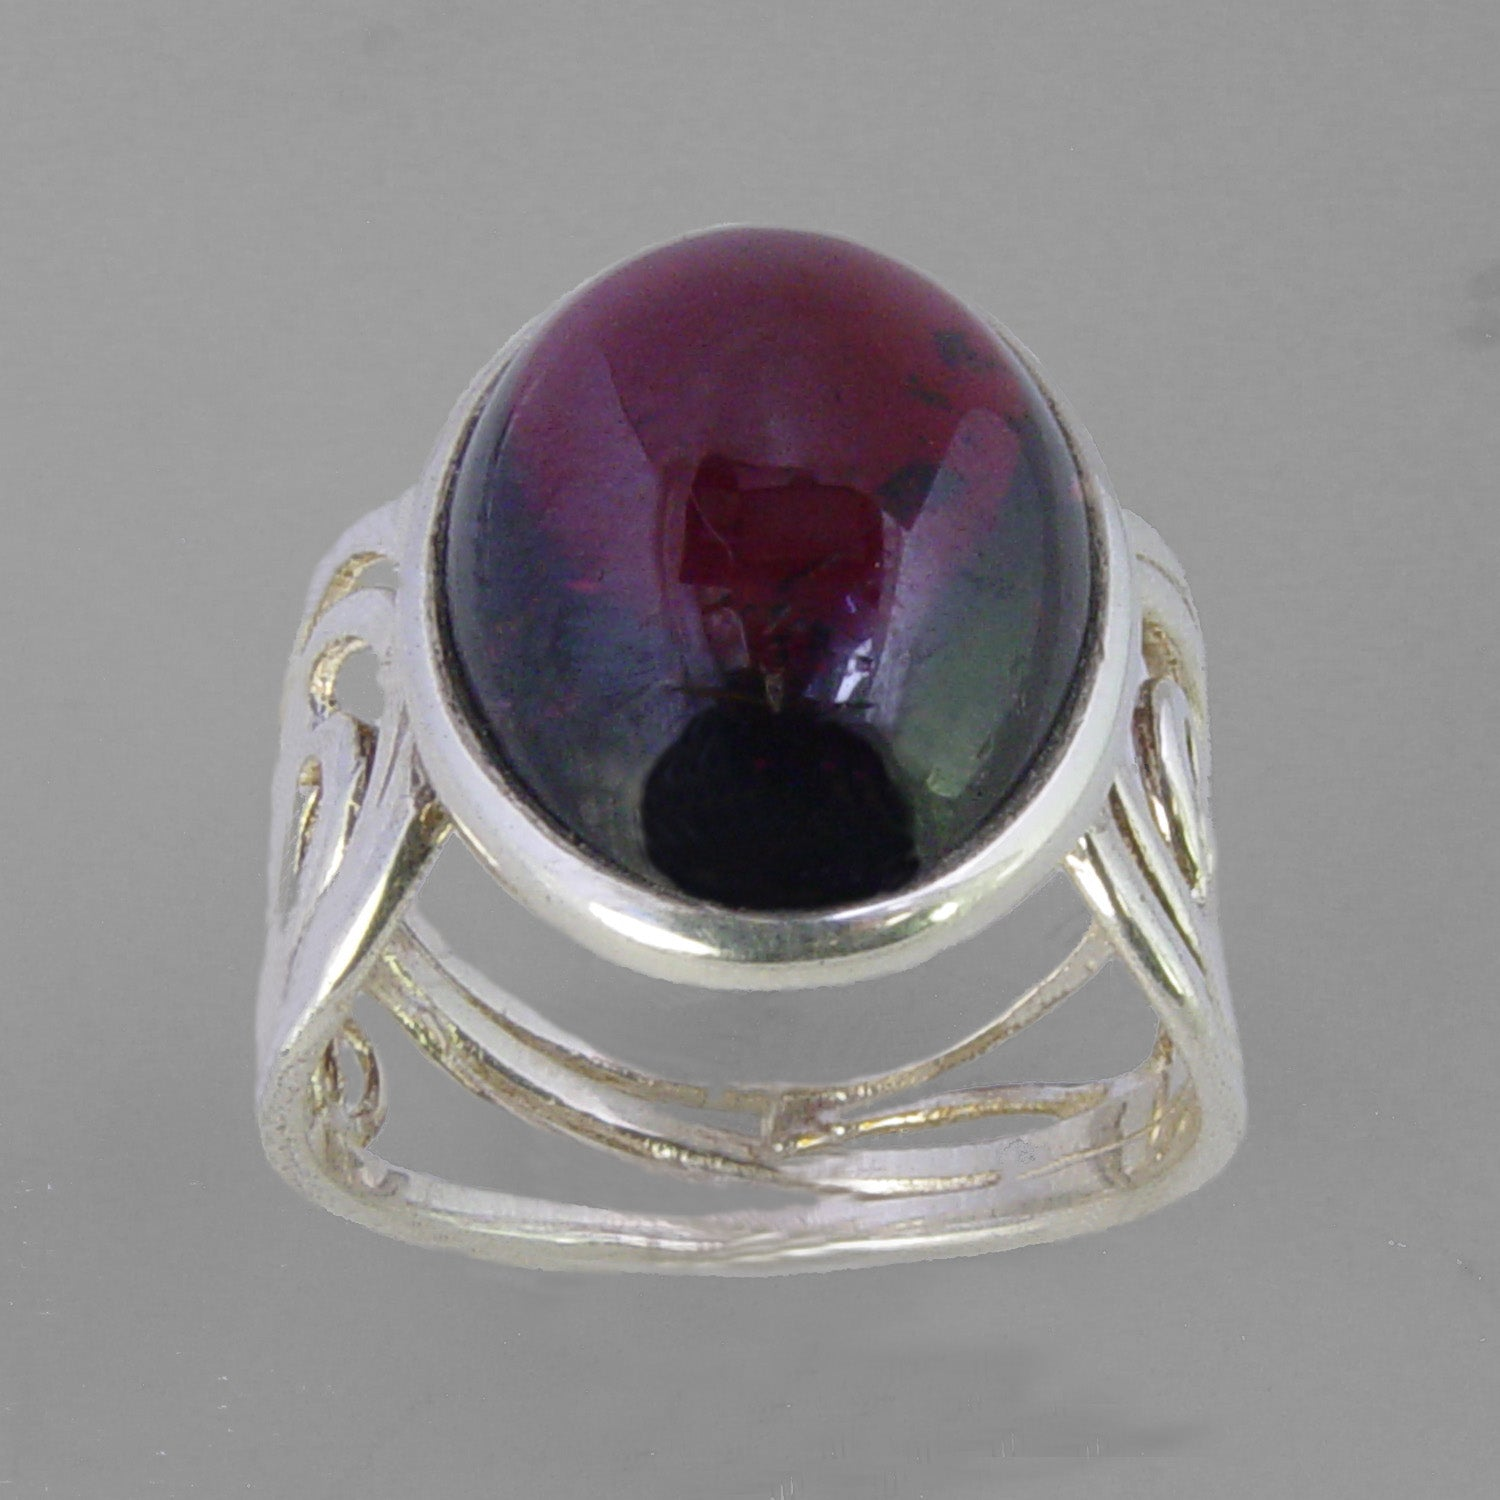 Garnet 11.4 ct Oval Cab Sterling Silver Ring, Size 8